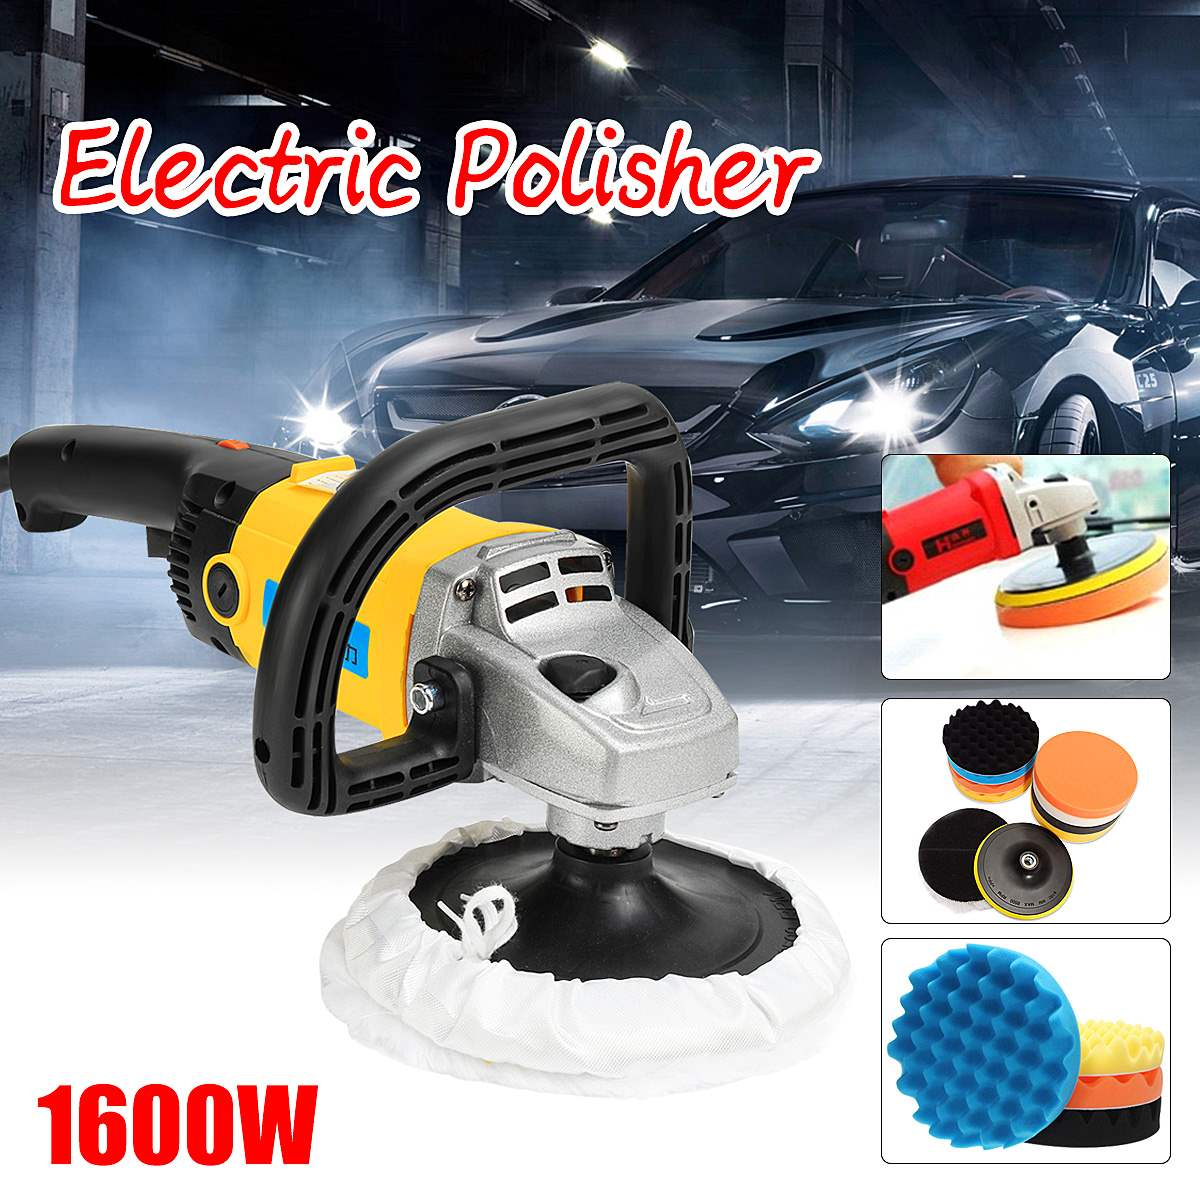 Electric Waxer 220V 1600W Polisher 1/8 Shaft Hand Held Polishing Machine Grinder Car Buffer Cleaner+7inch Polishing Sponge